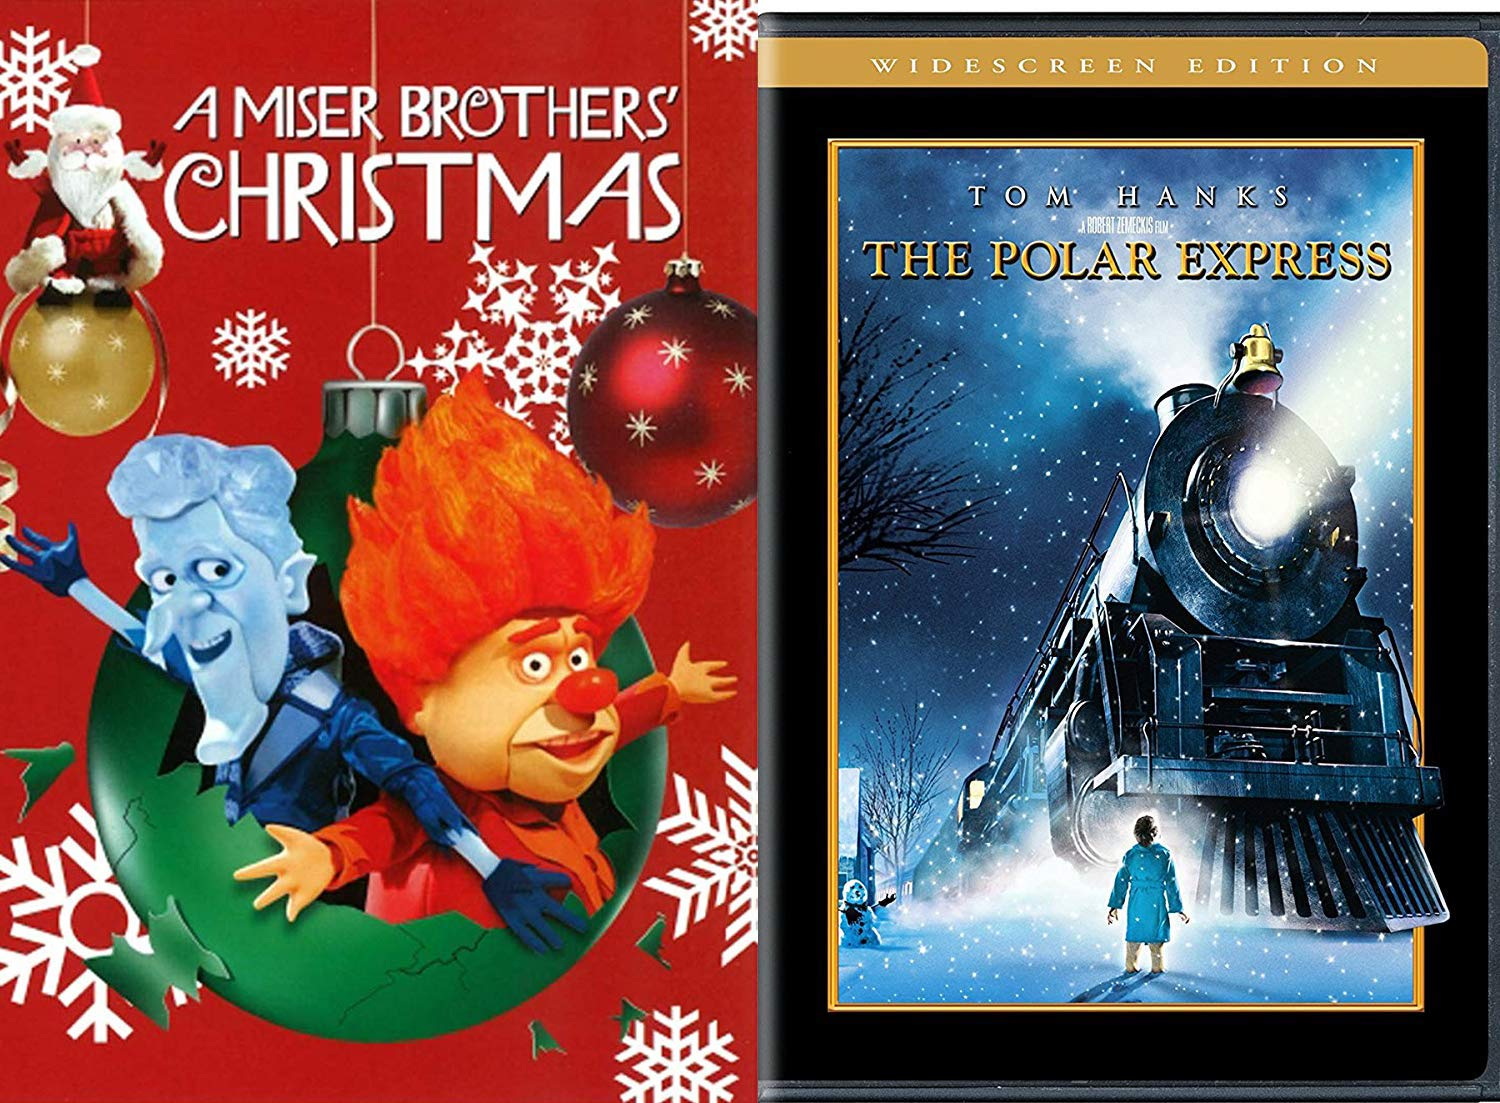 A Miser Brothers Christmas.Amazon Com A Miser Brothers Christmas The Polar Express